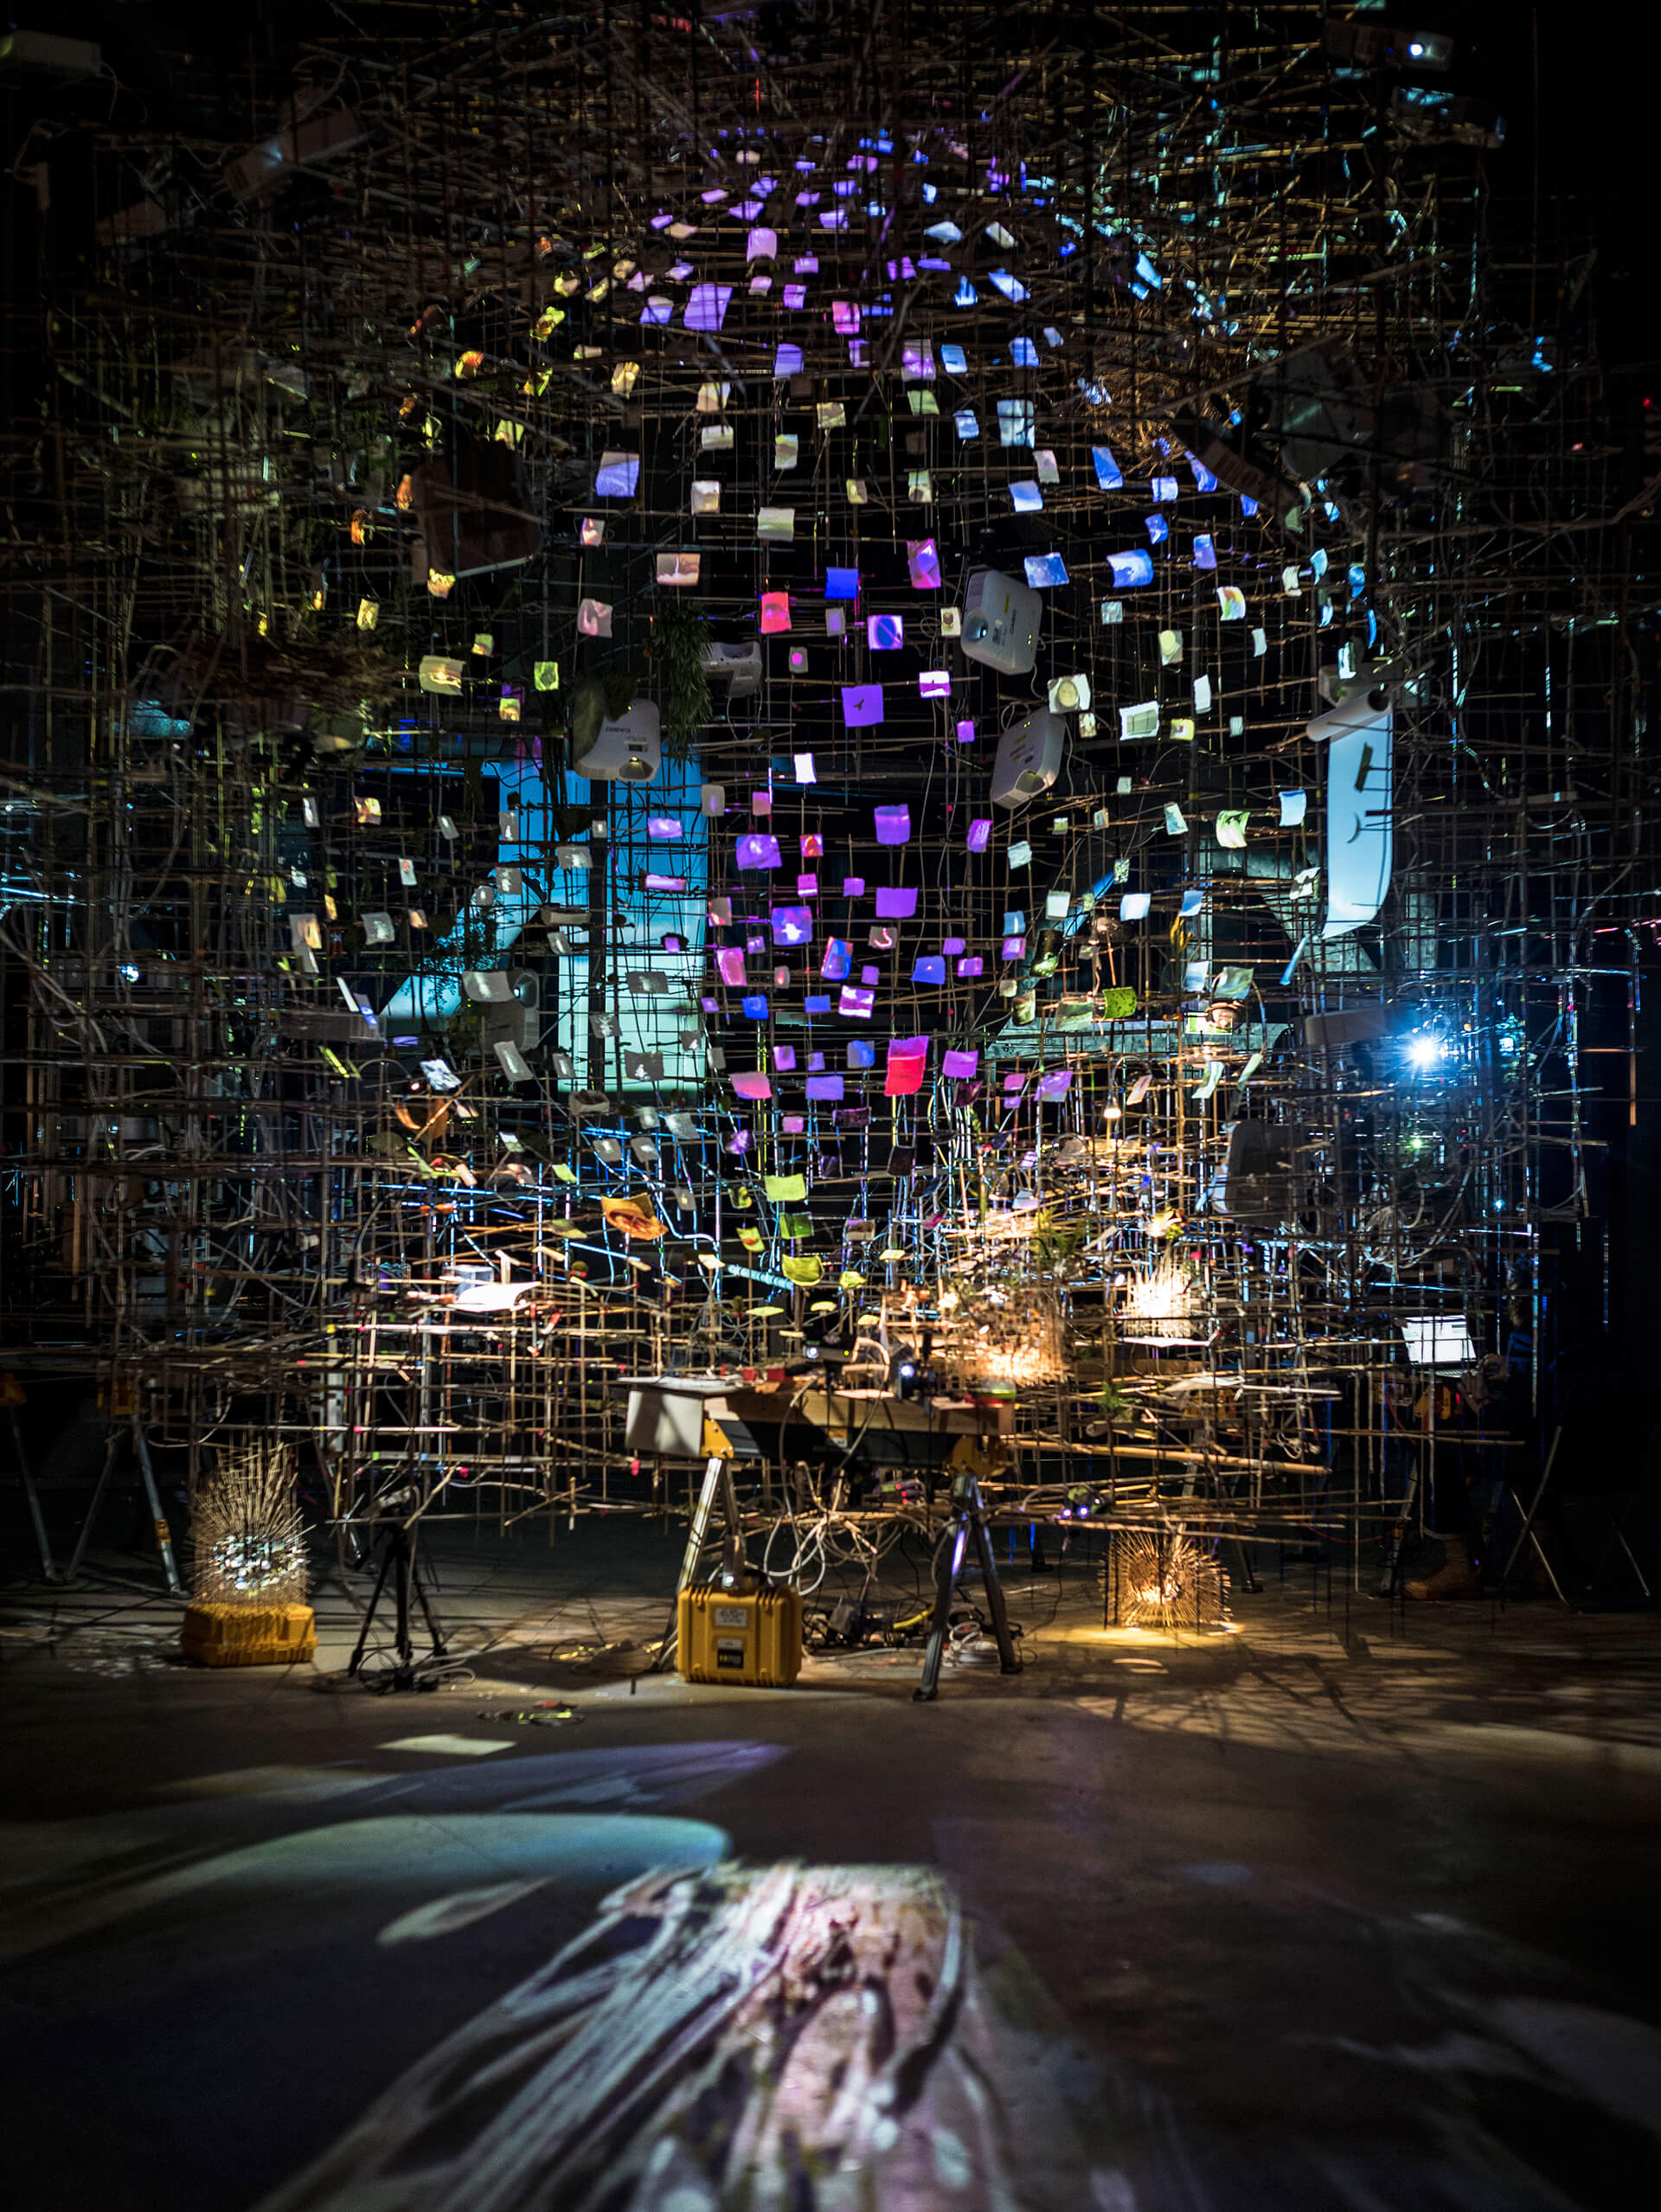 Twice Twilight on display at Fondation Cartier, Paris at 'Night into Day' by Sarah Sze| STIRworld